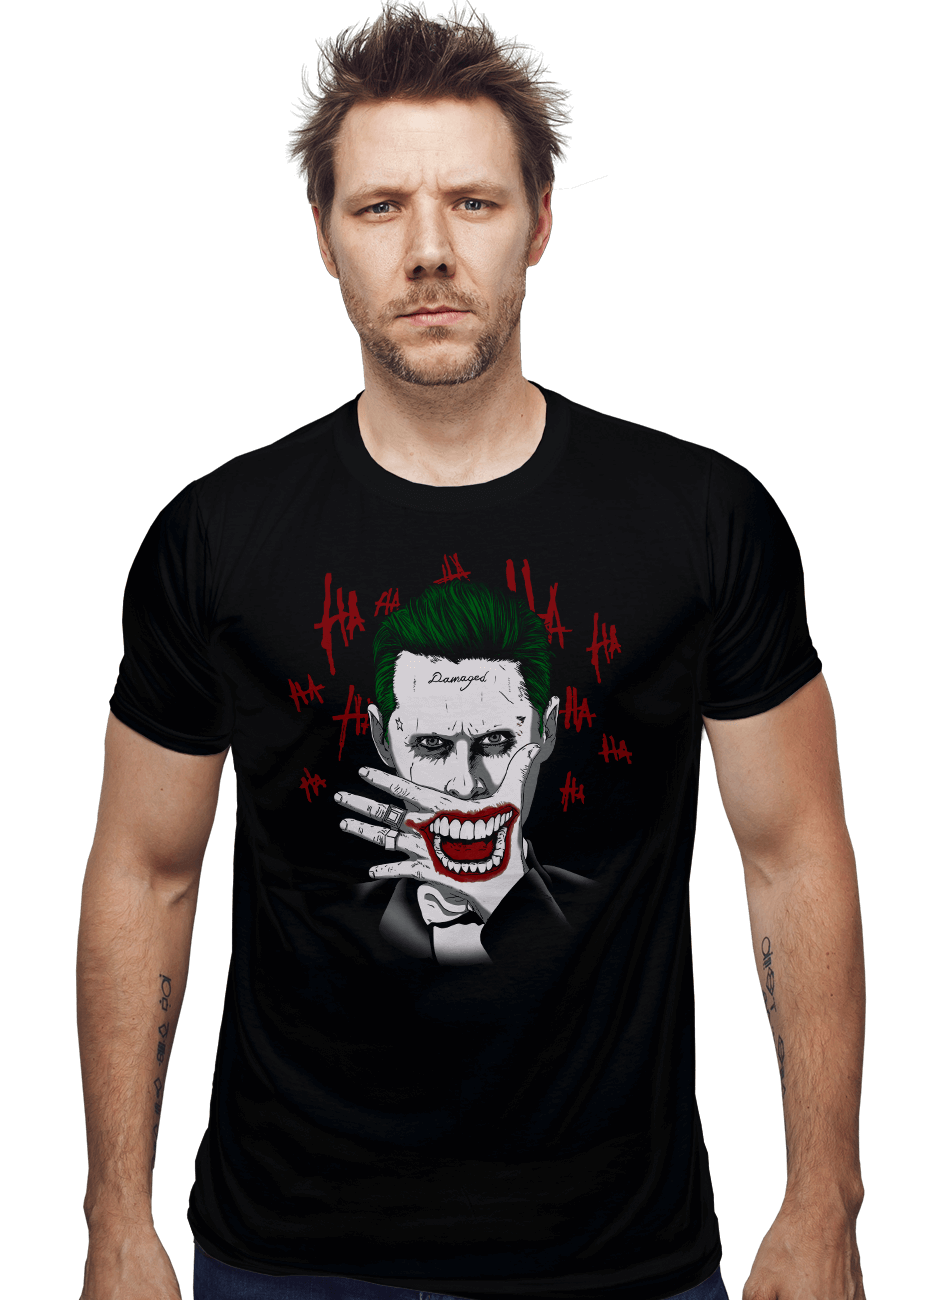 Are you Enjoying Yourself - The Joker T-Shirts